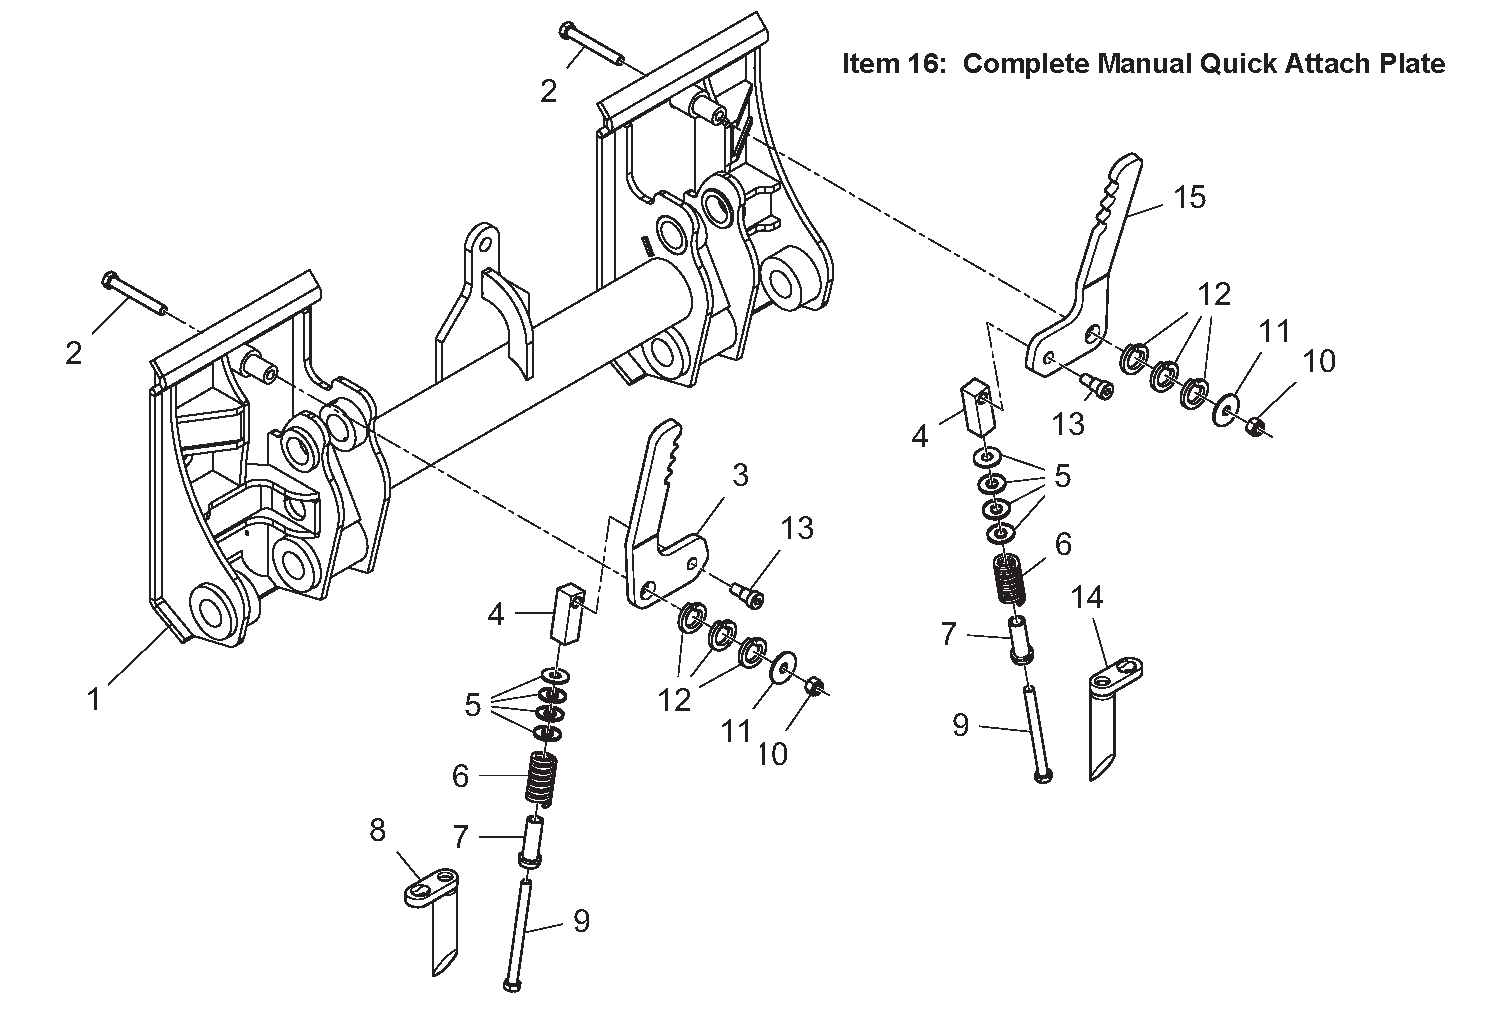 Diagram 8-2A Quick Attach Mounting Plate - Manual